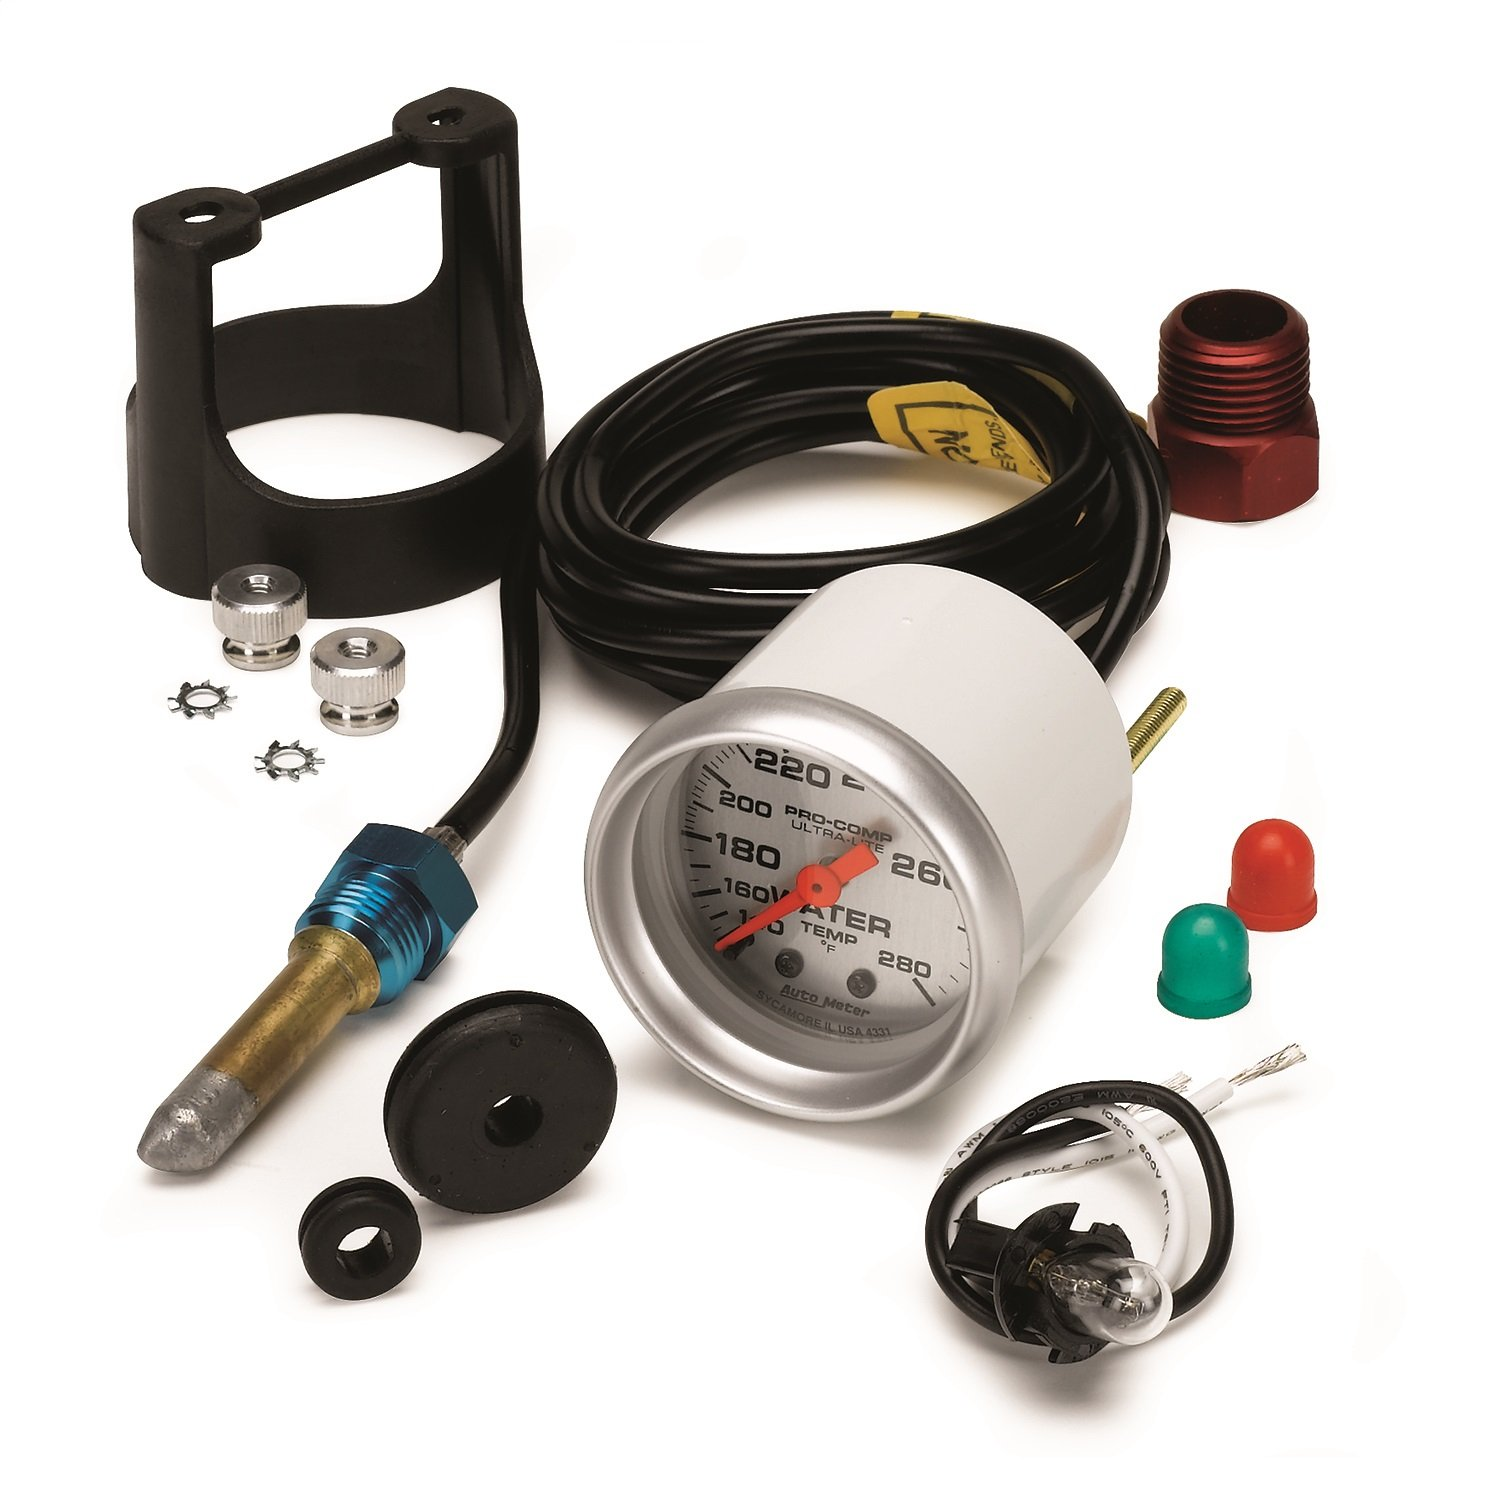 Auto Meter 4331 Ultra-Lite Mechanical Water Temperature Gauge by Auto Meter